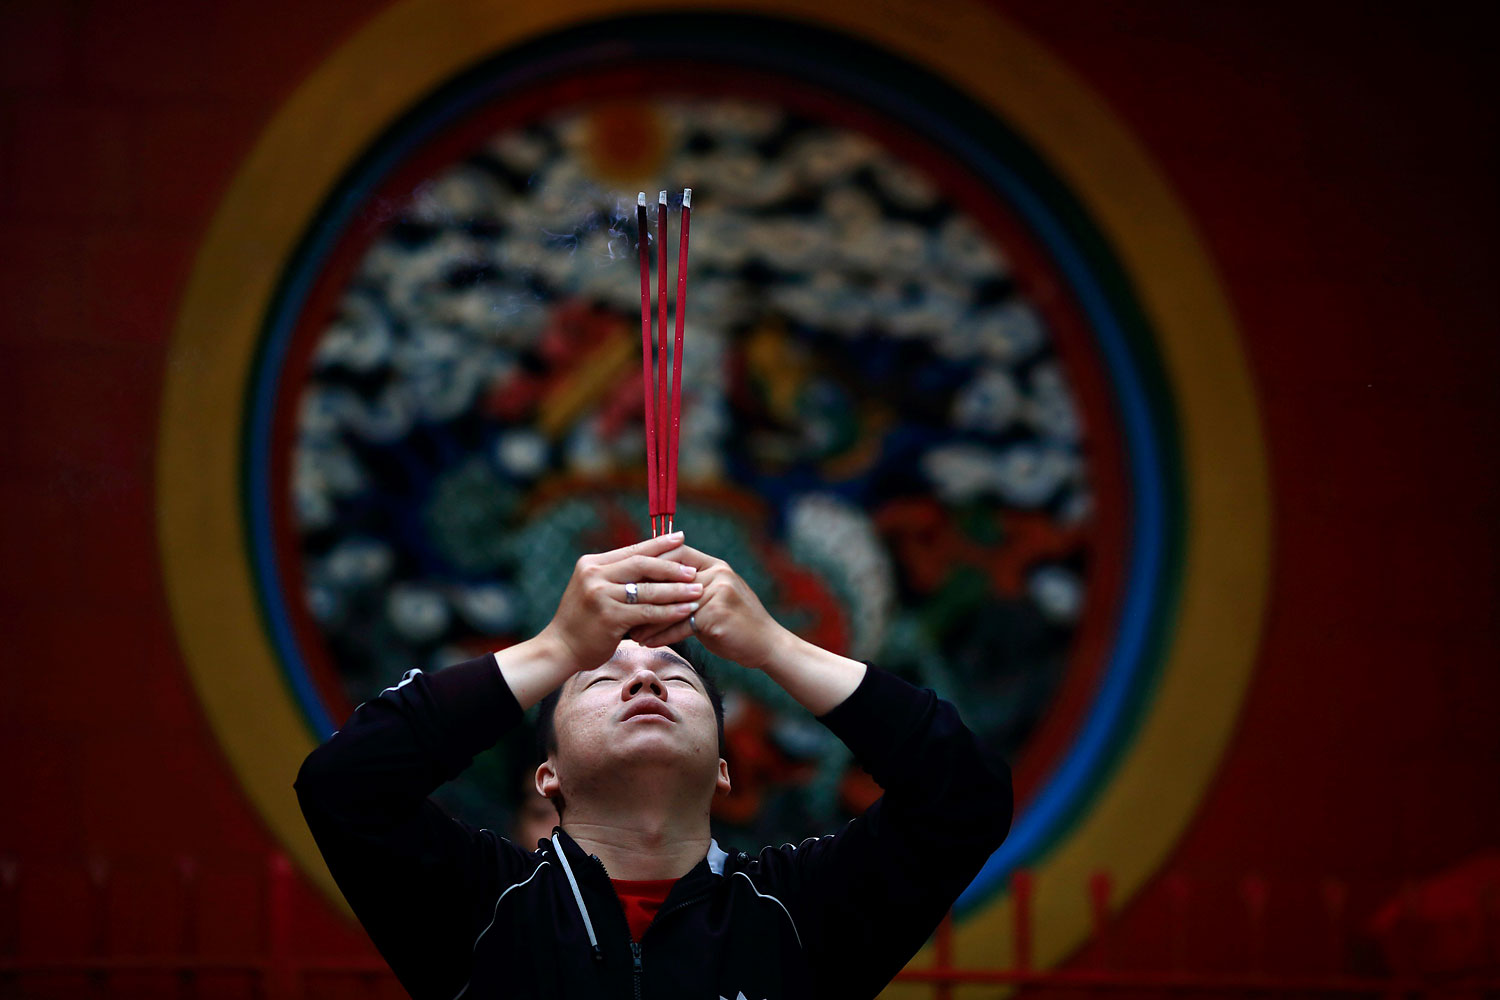 A man prays for good fortune while holding incense on the first day of the Chinese Lunar New Year at Petak Sembilan Temple, in Jakarta, Jan. 31, 2014.